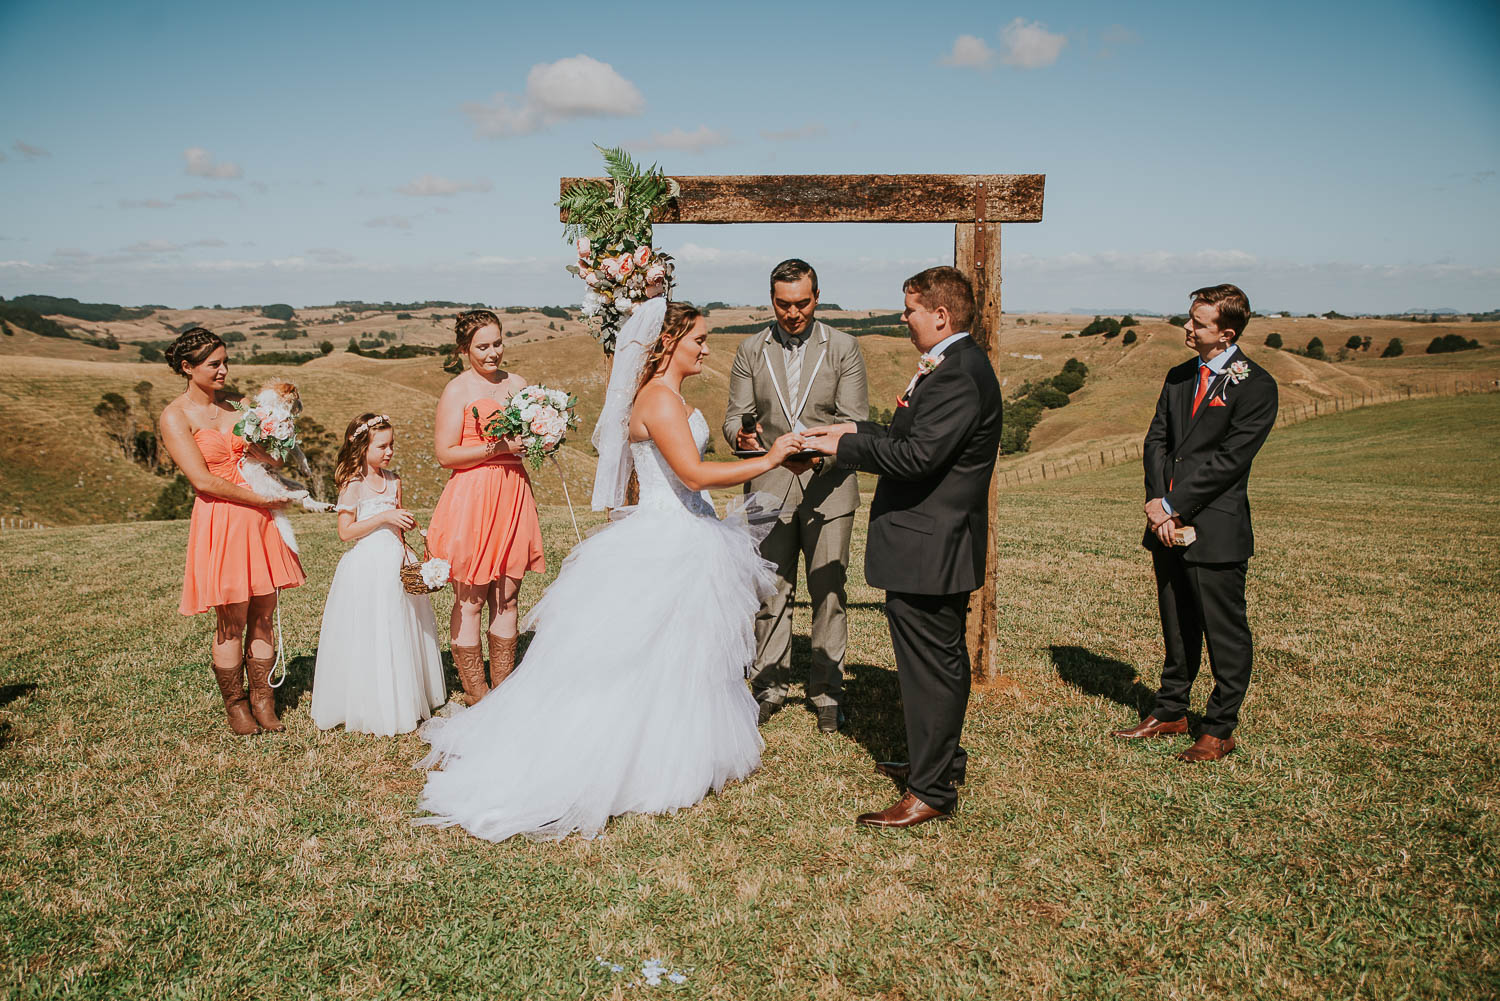 james-melinda-auckland-rustic-farm-wedding-39